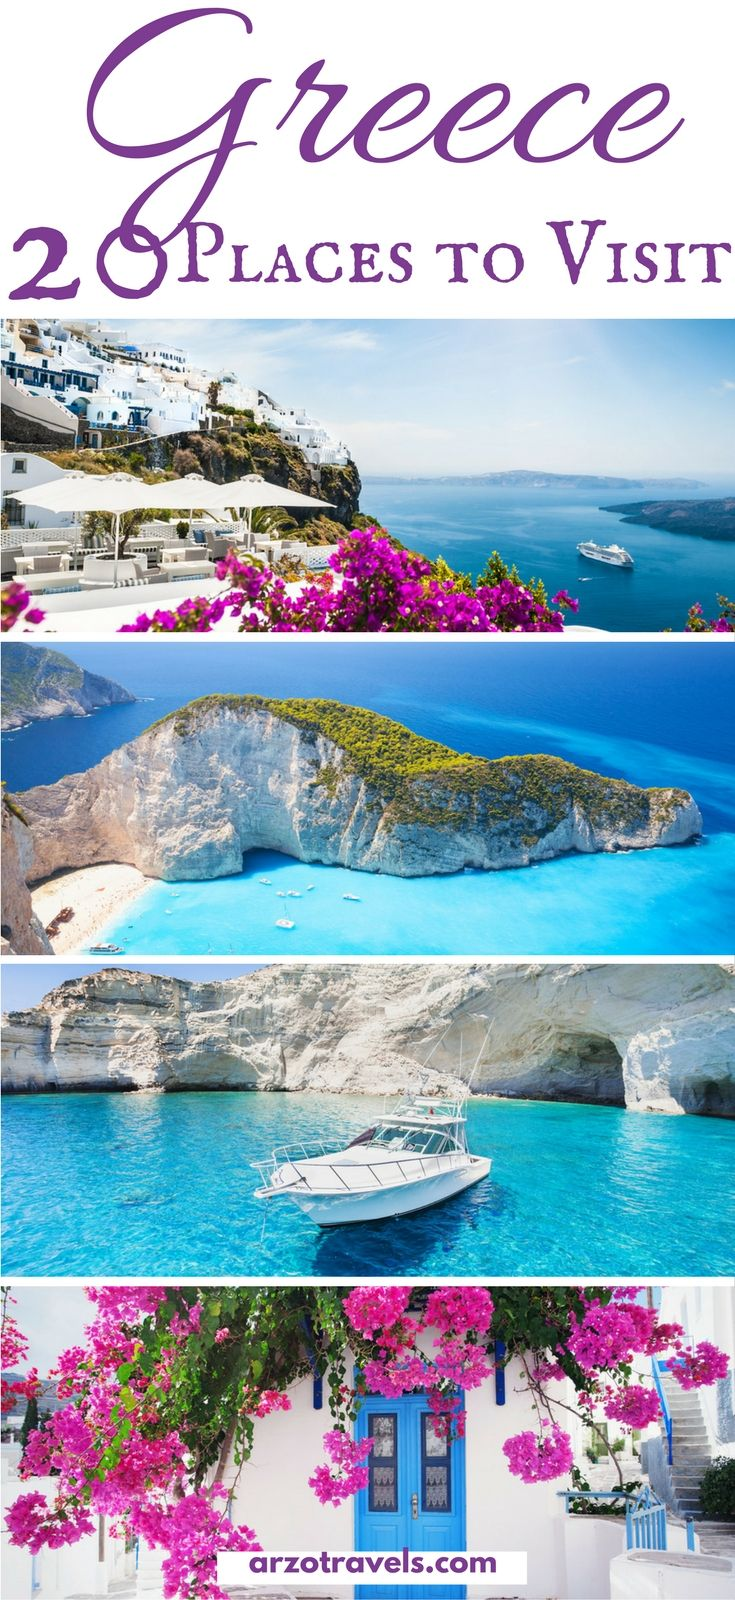 Best Places to Visit in Greece | Travel ideas | Pinterest | Places to  visit, Places and Travel